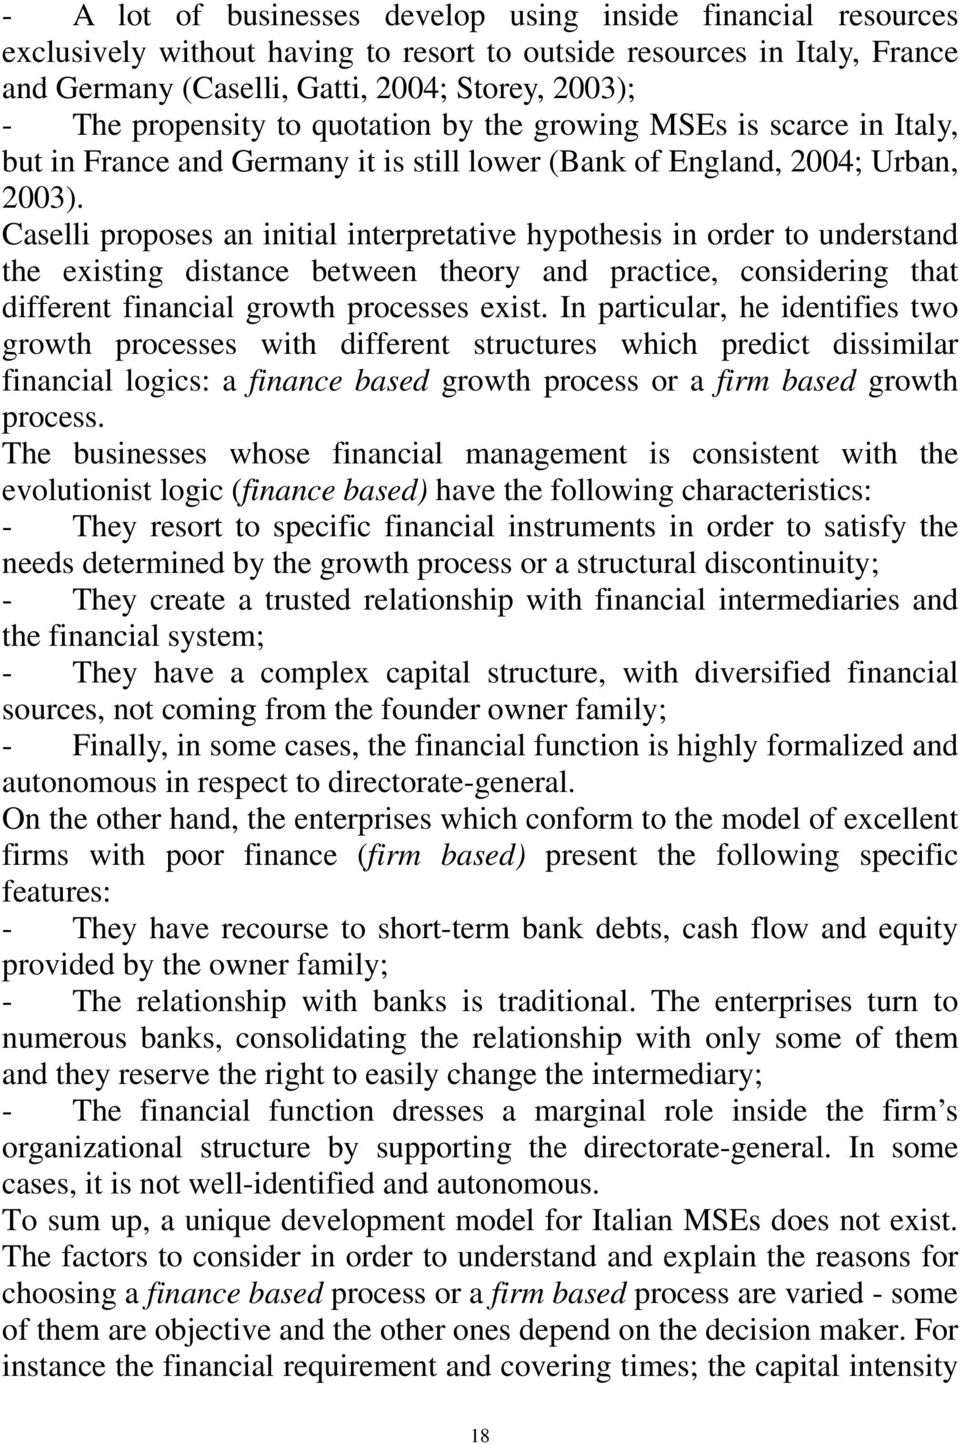 Caselli proposes an initial interpretative hypothesis in order to understand the existing distance between theory and practice, considering that different financial growth processes exist.